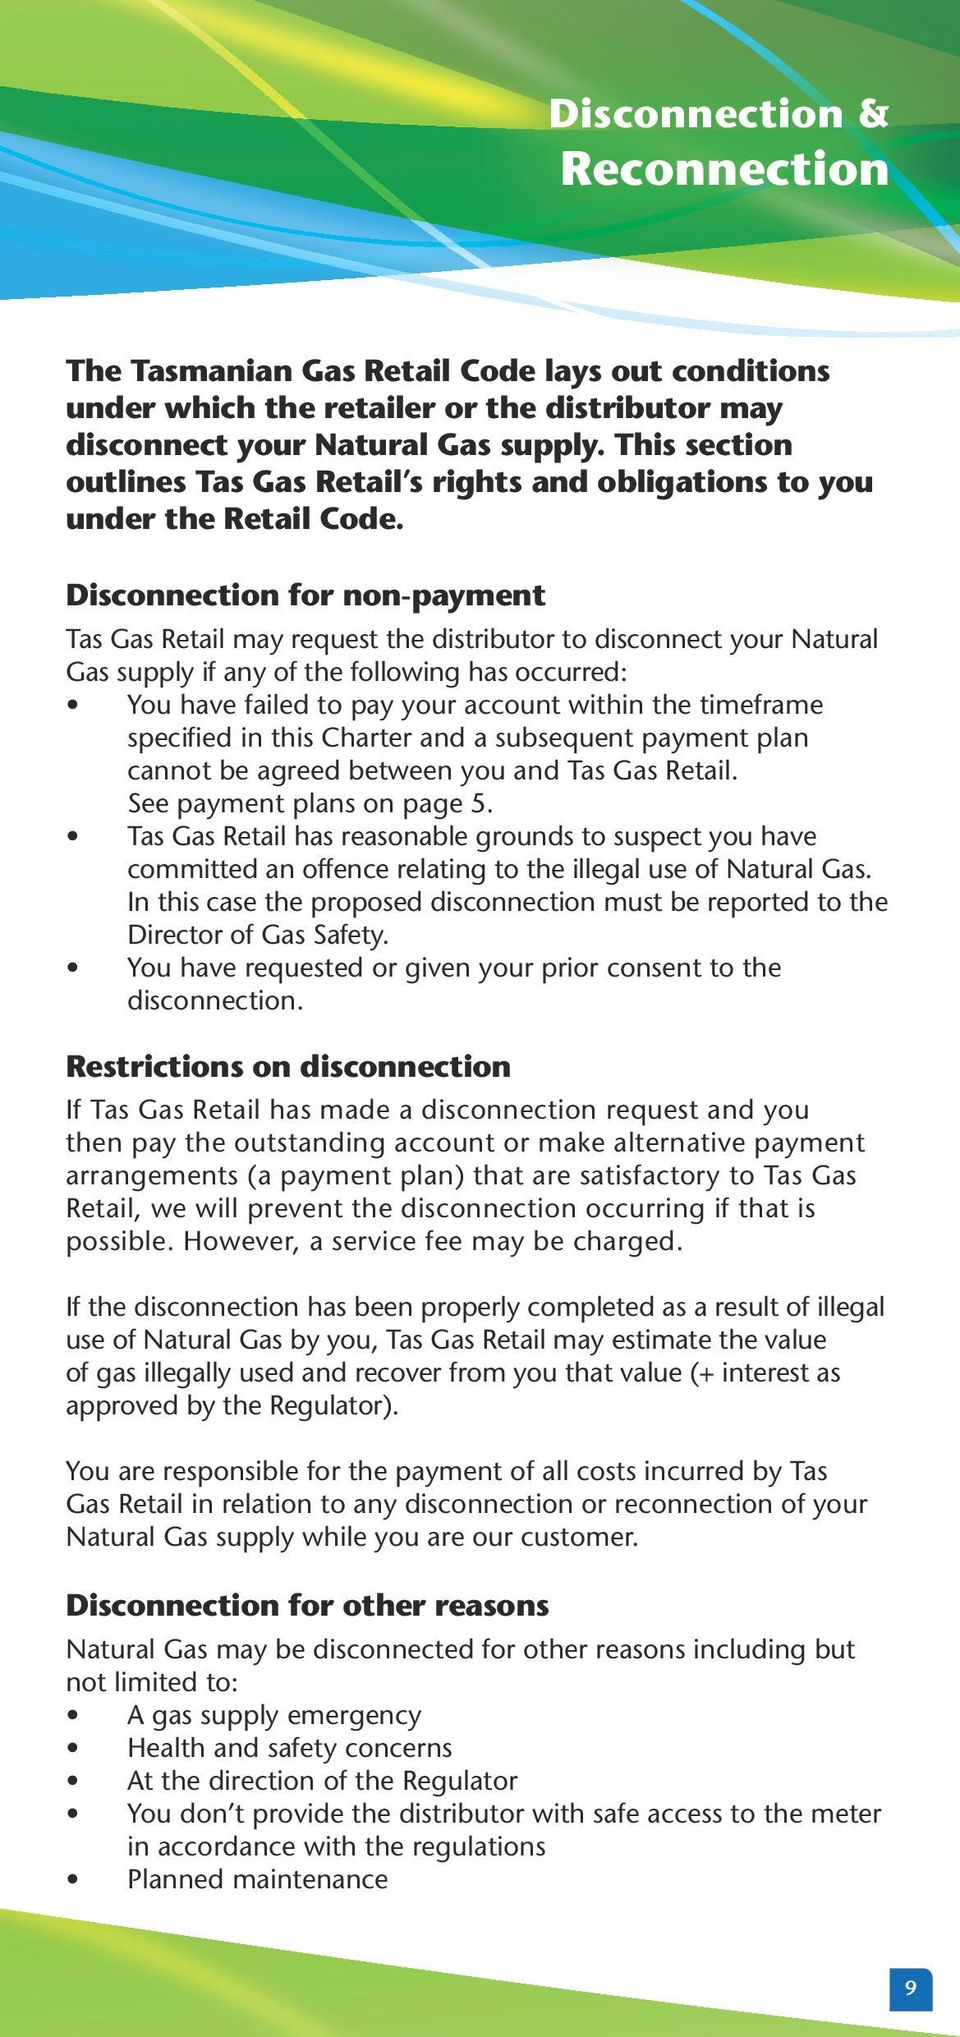 Disconnection for non-payment Tas Gas Retail may request the distributor to disconnect your Natural Gas supply if any of the following has occurred: You have failed to pay your account within the